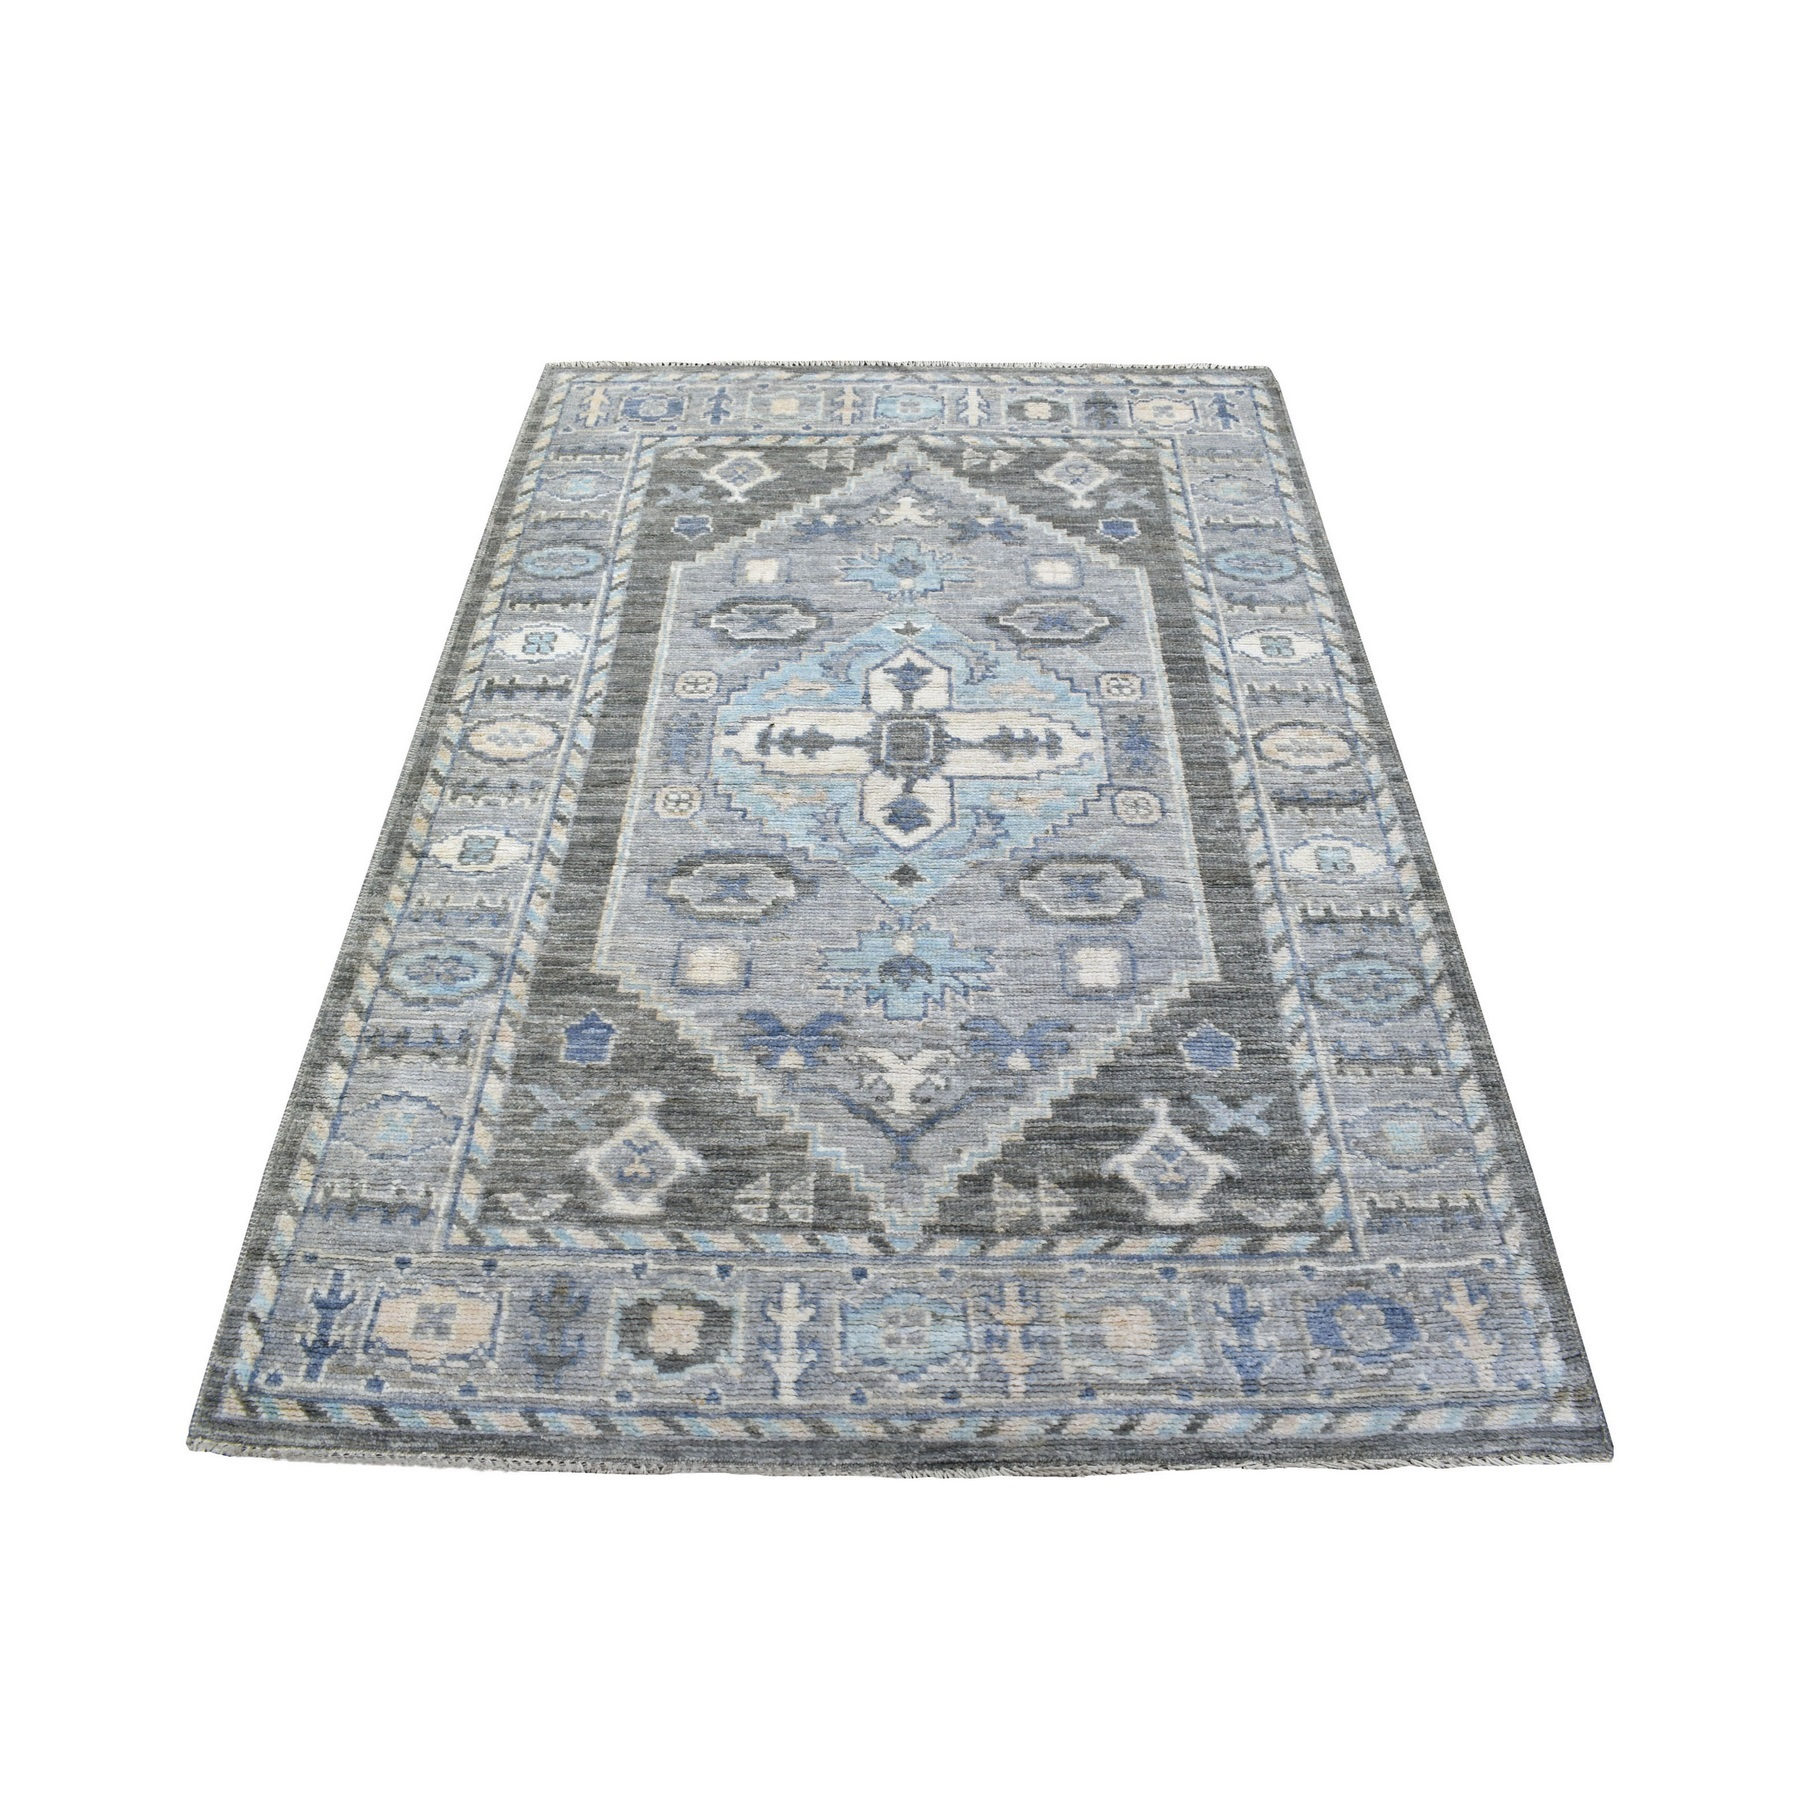 Nomadic And Village Collection Hand Knotted Grey Rug No: 1136672